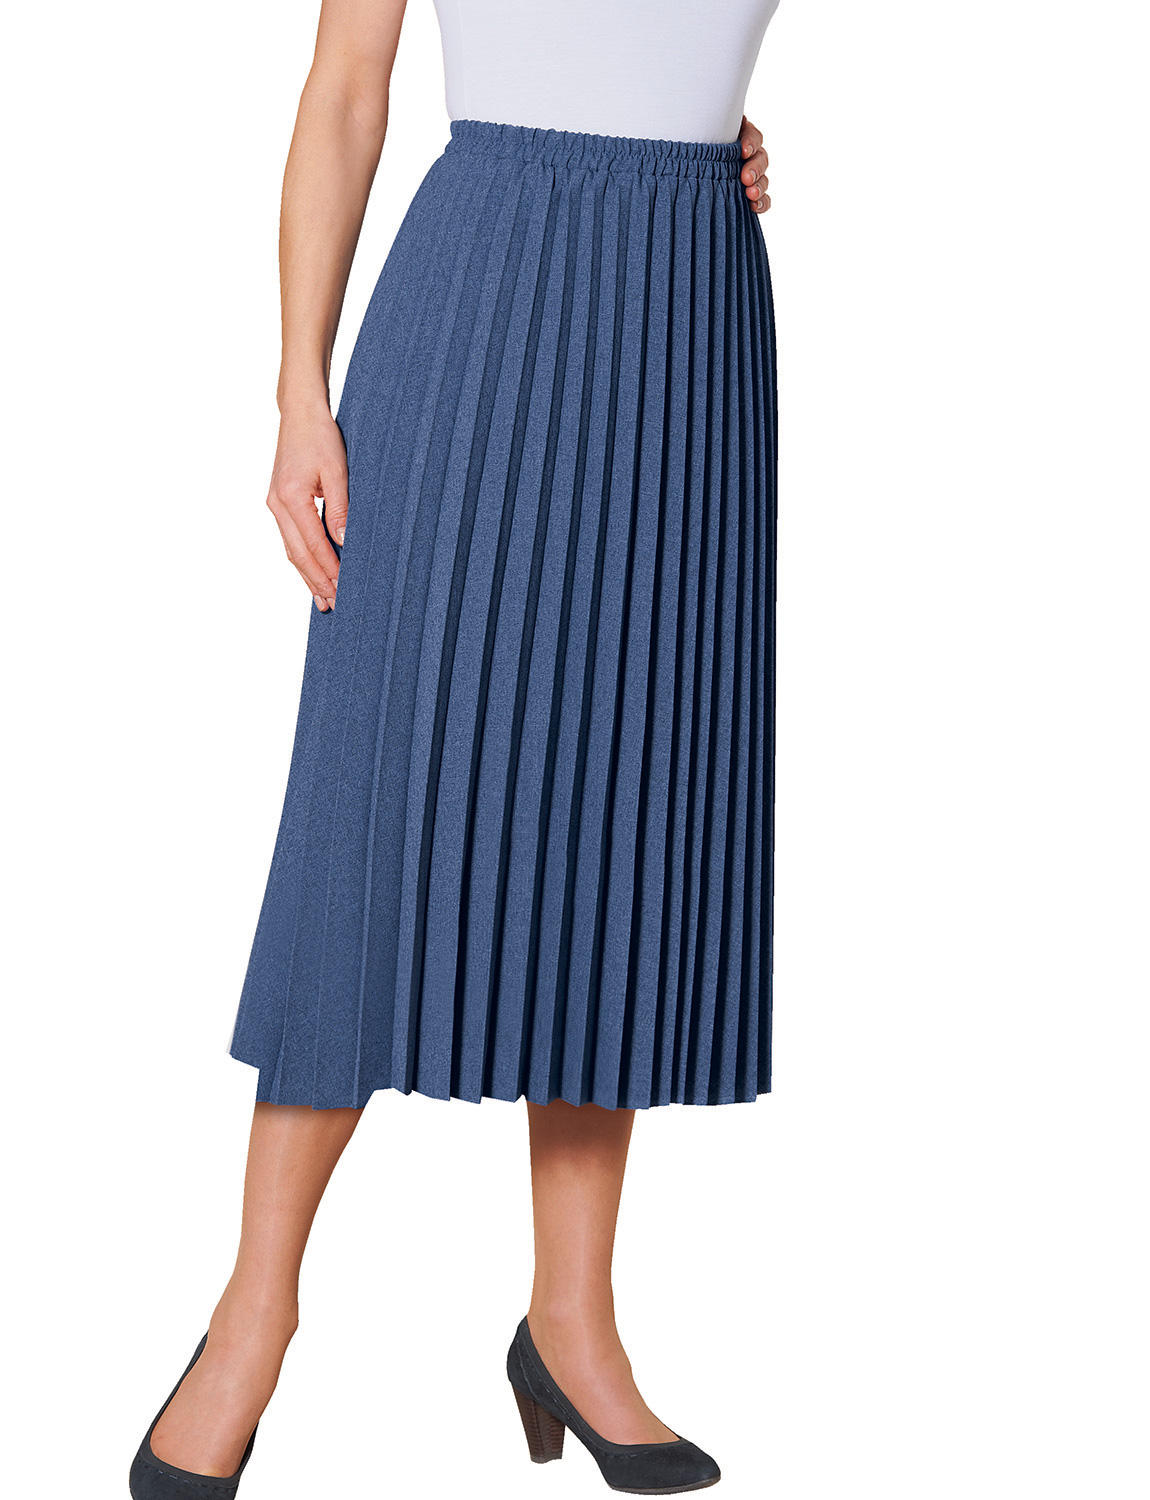 sunray pleated skirt 27 inches ebay